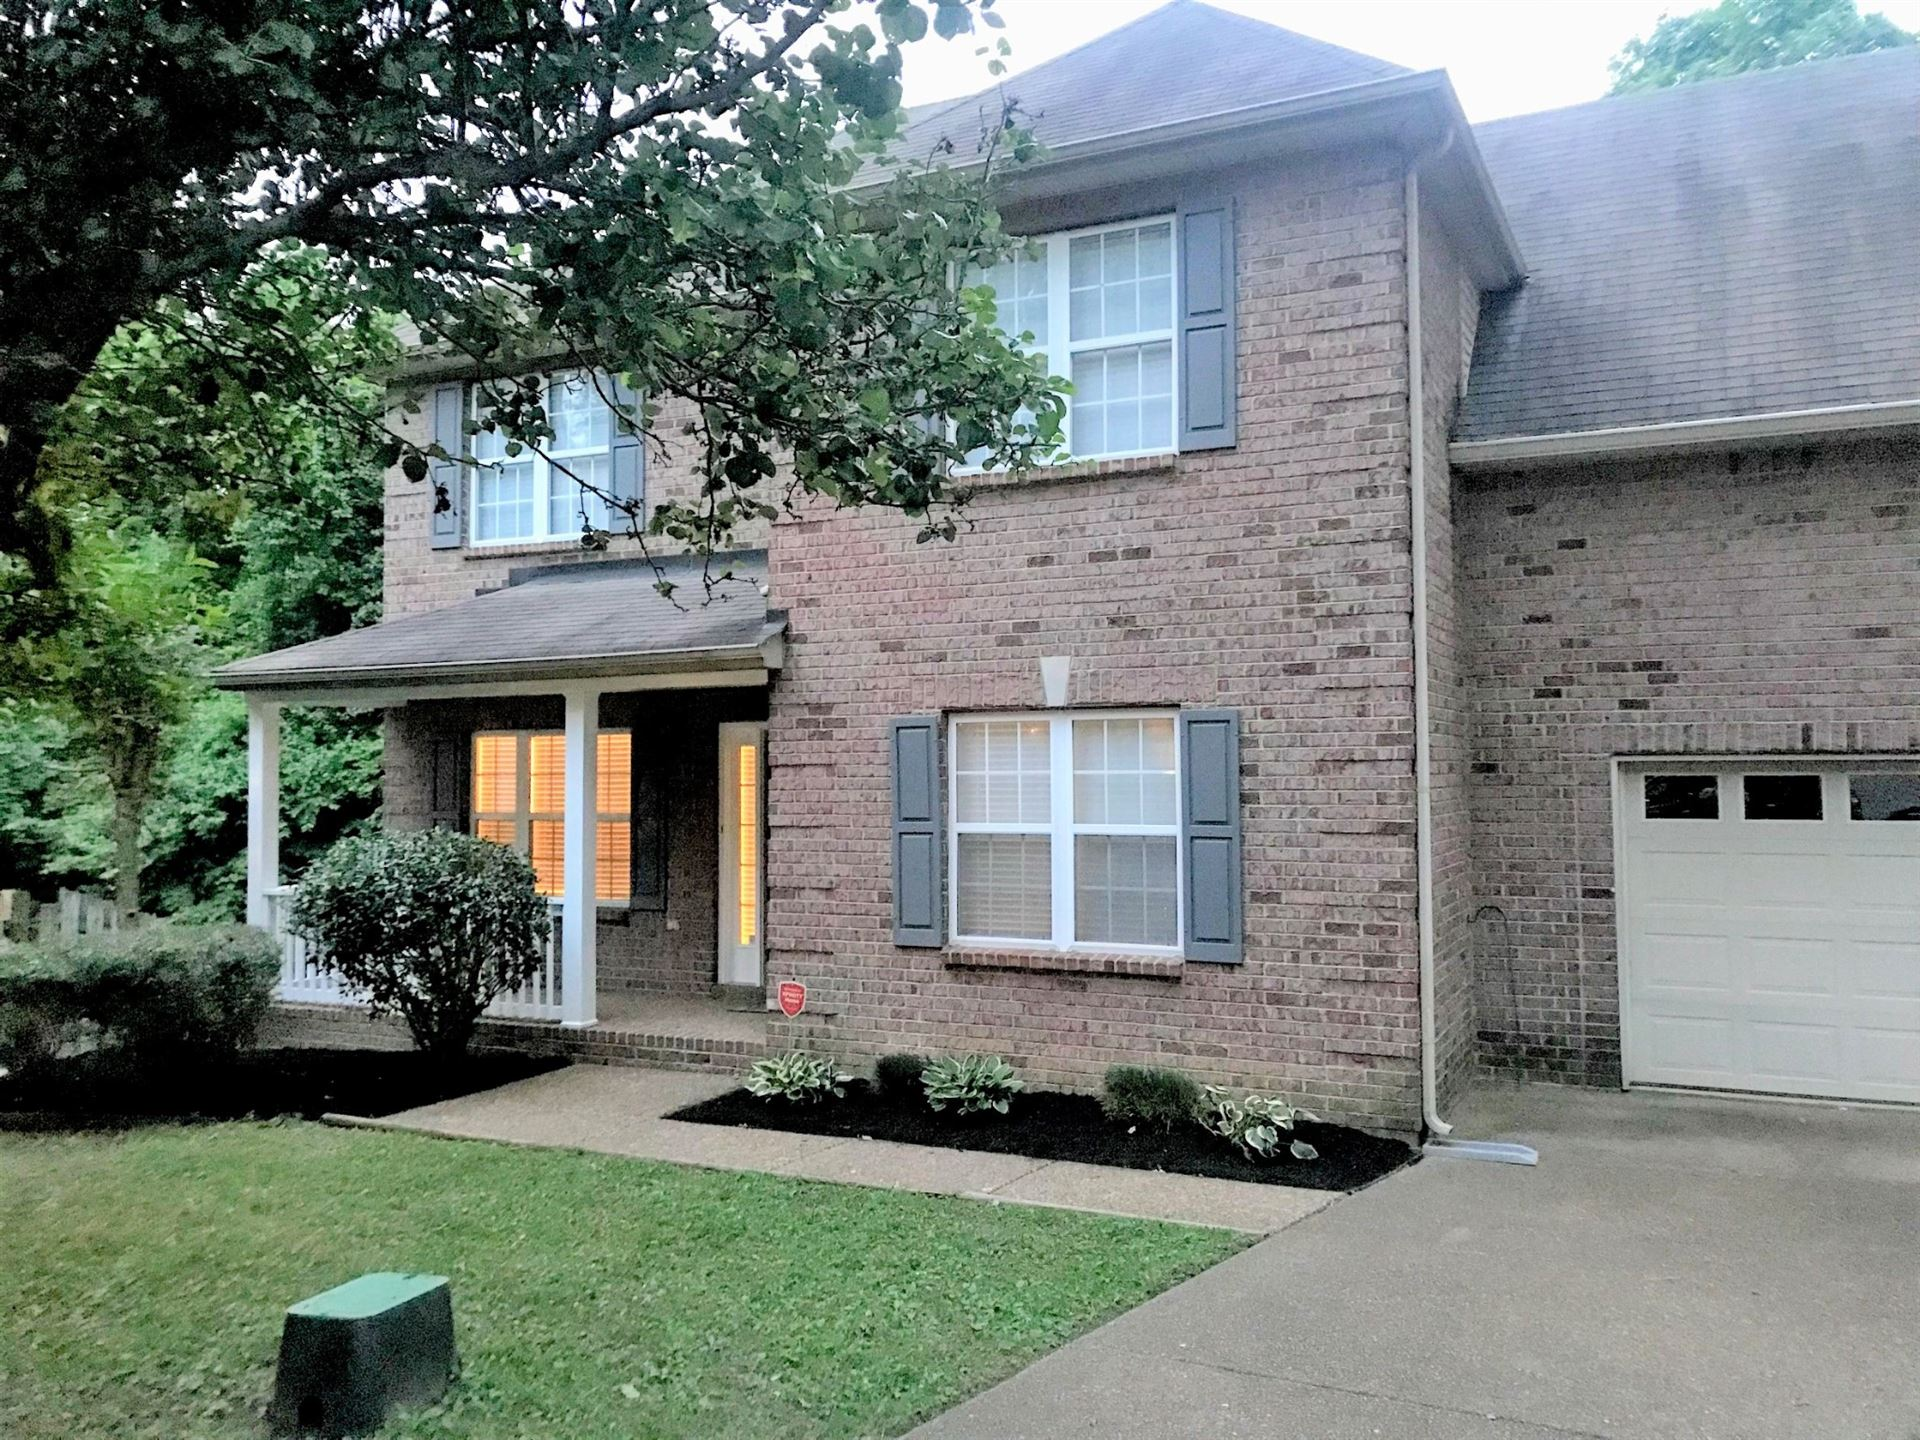 Photo of 1244 Andrew Donelson Dr, Hermitage, TN 37076 (MLS # 2130548)